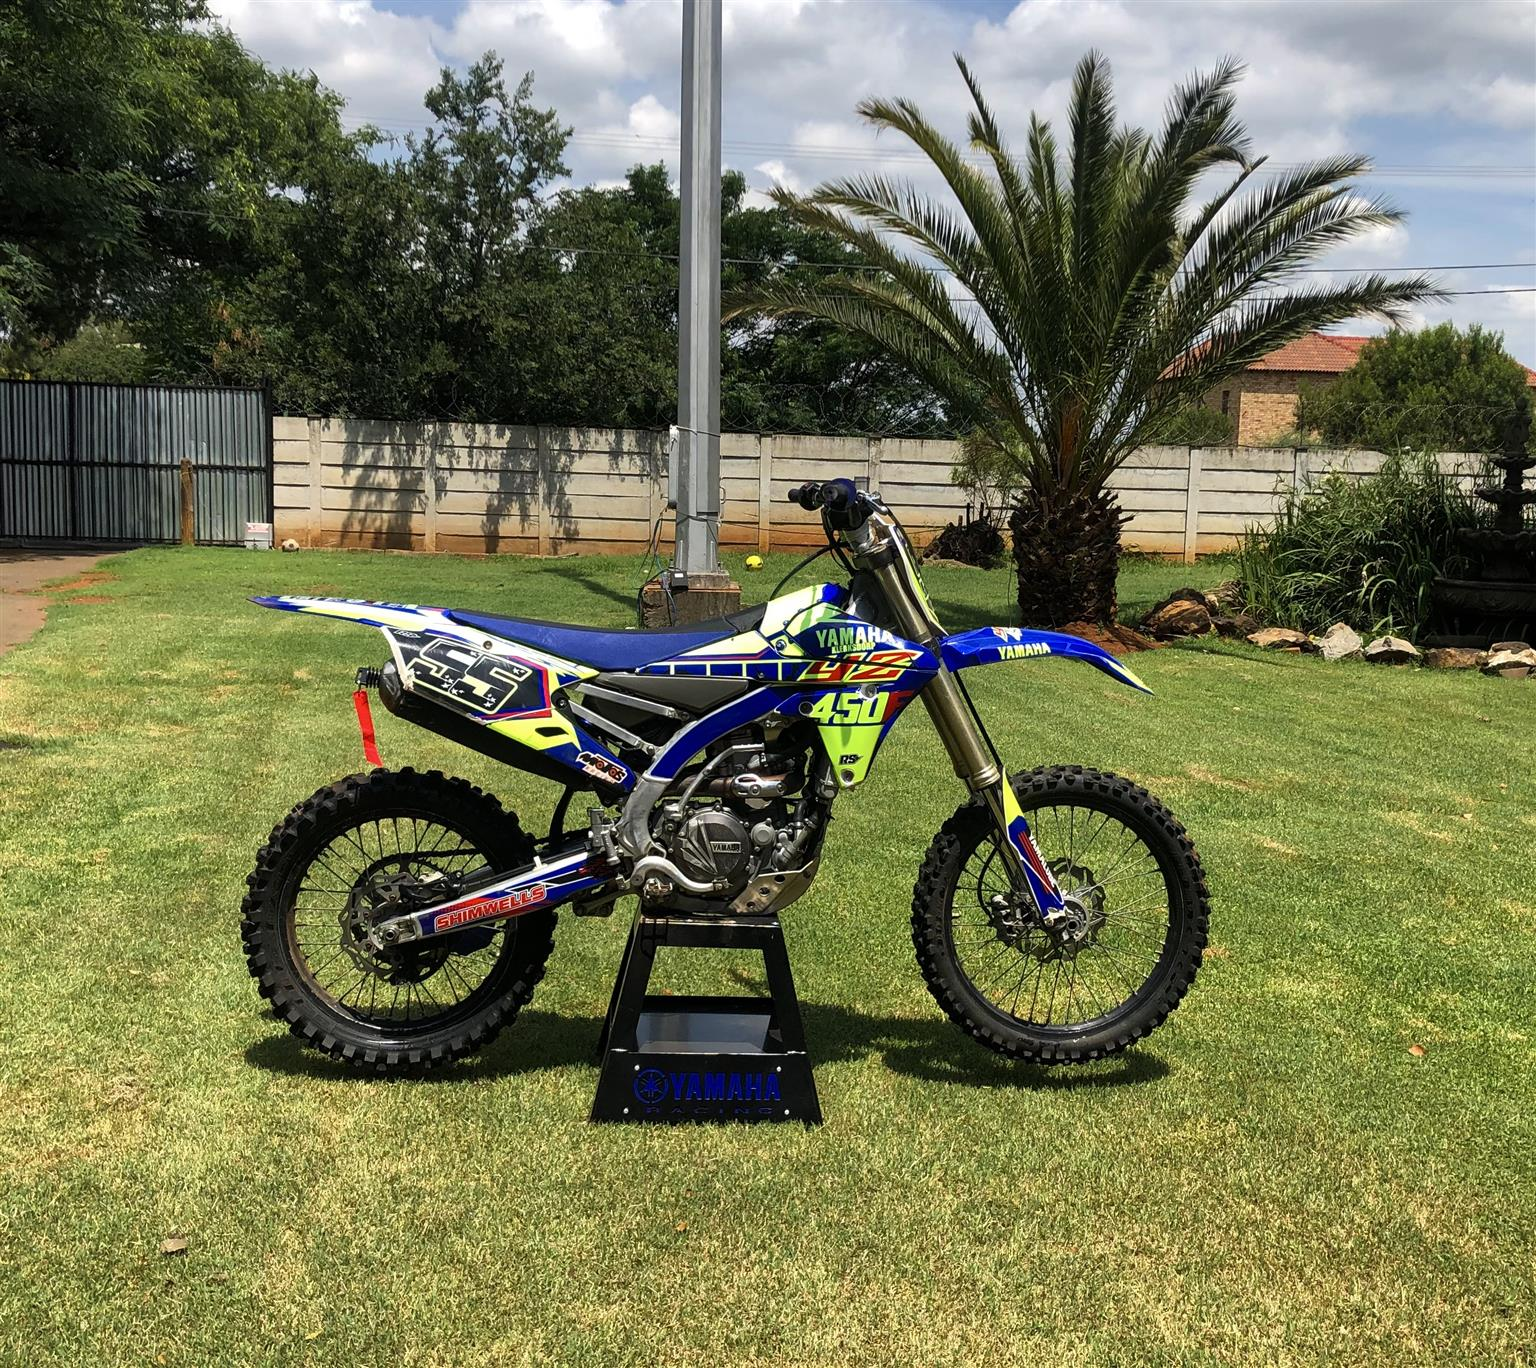 2015 YZ450F fuel injected